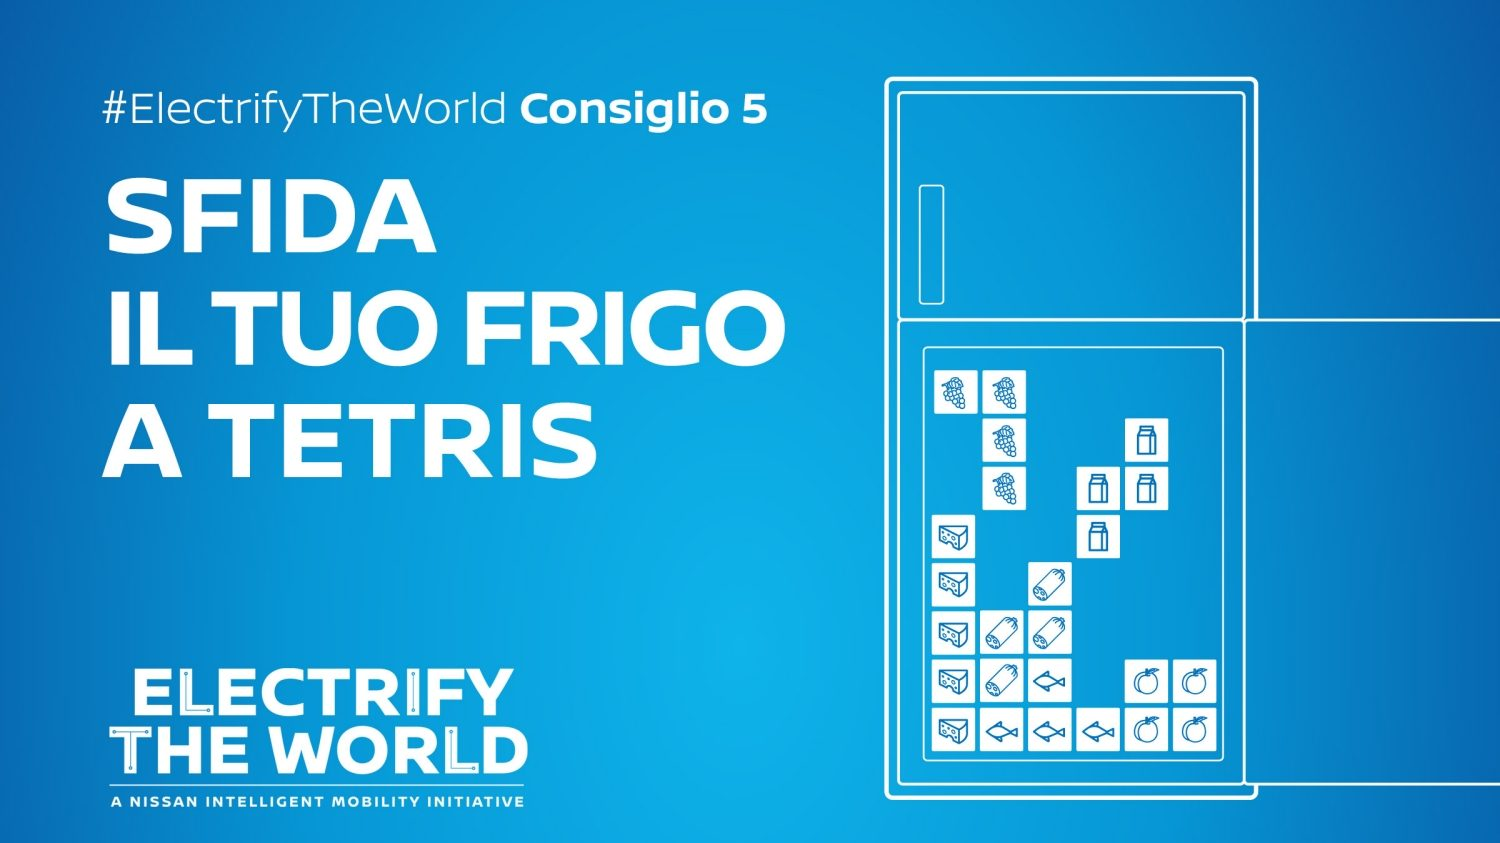 Electrify the World – Risparmio con il frigo